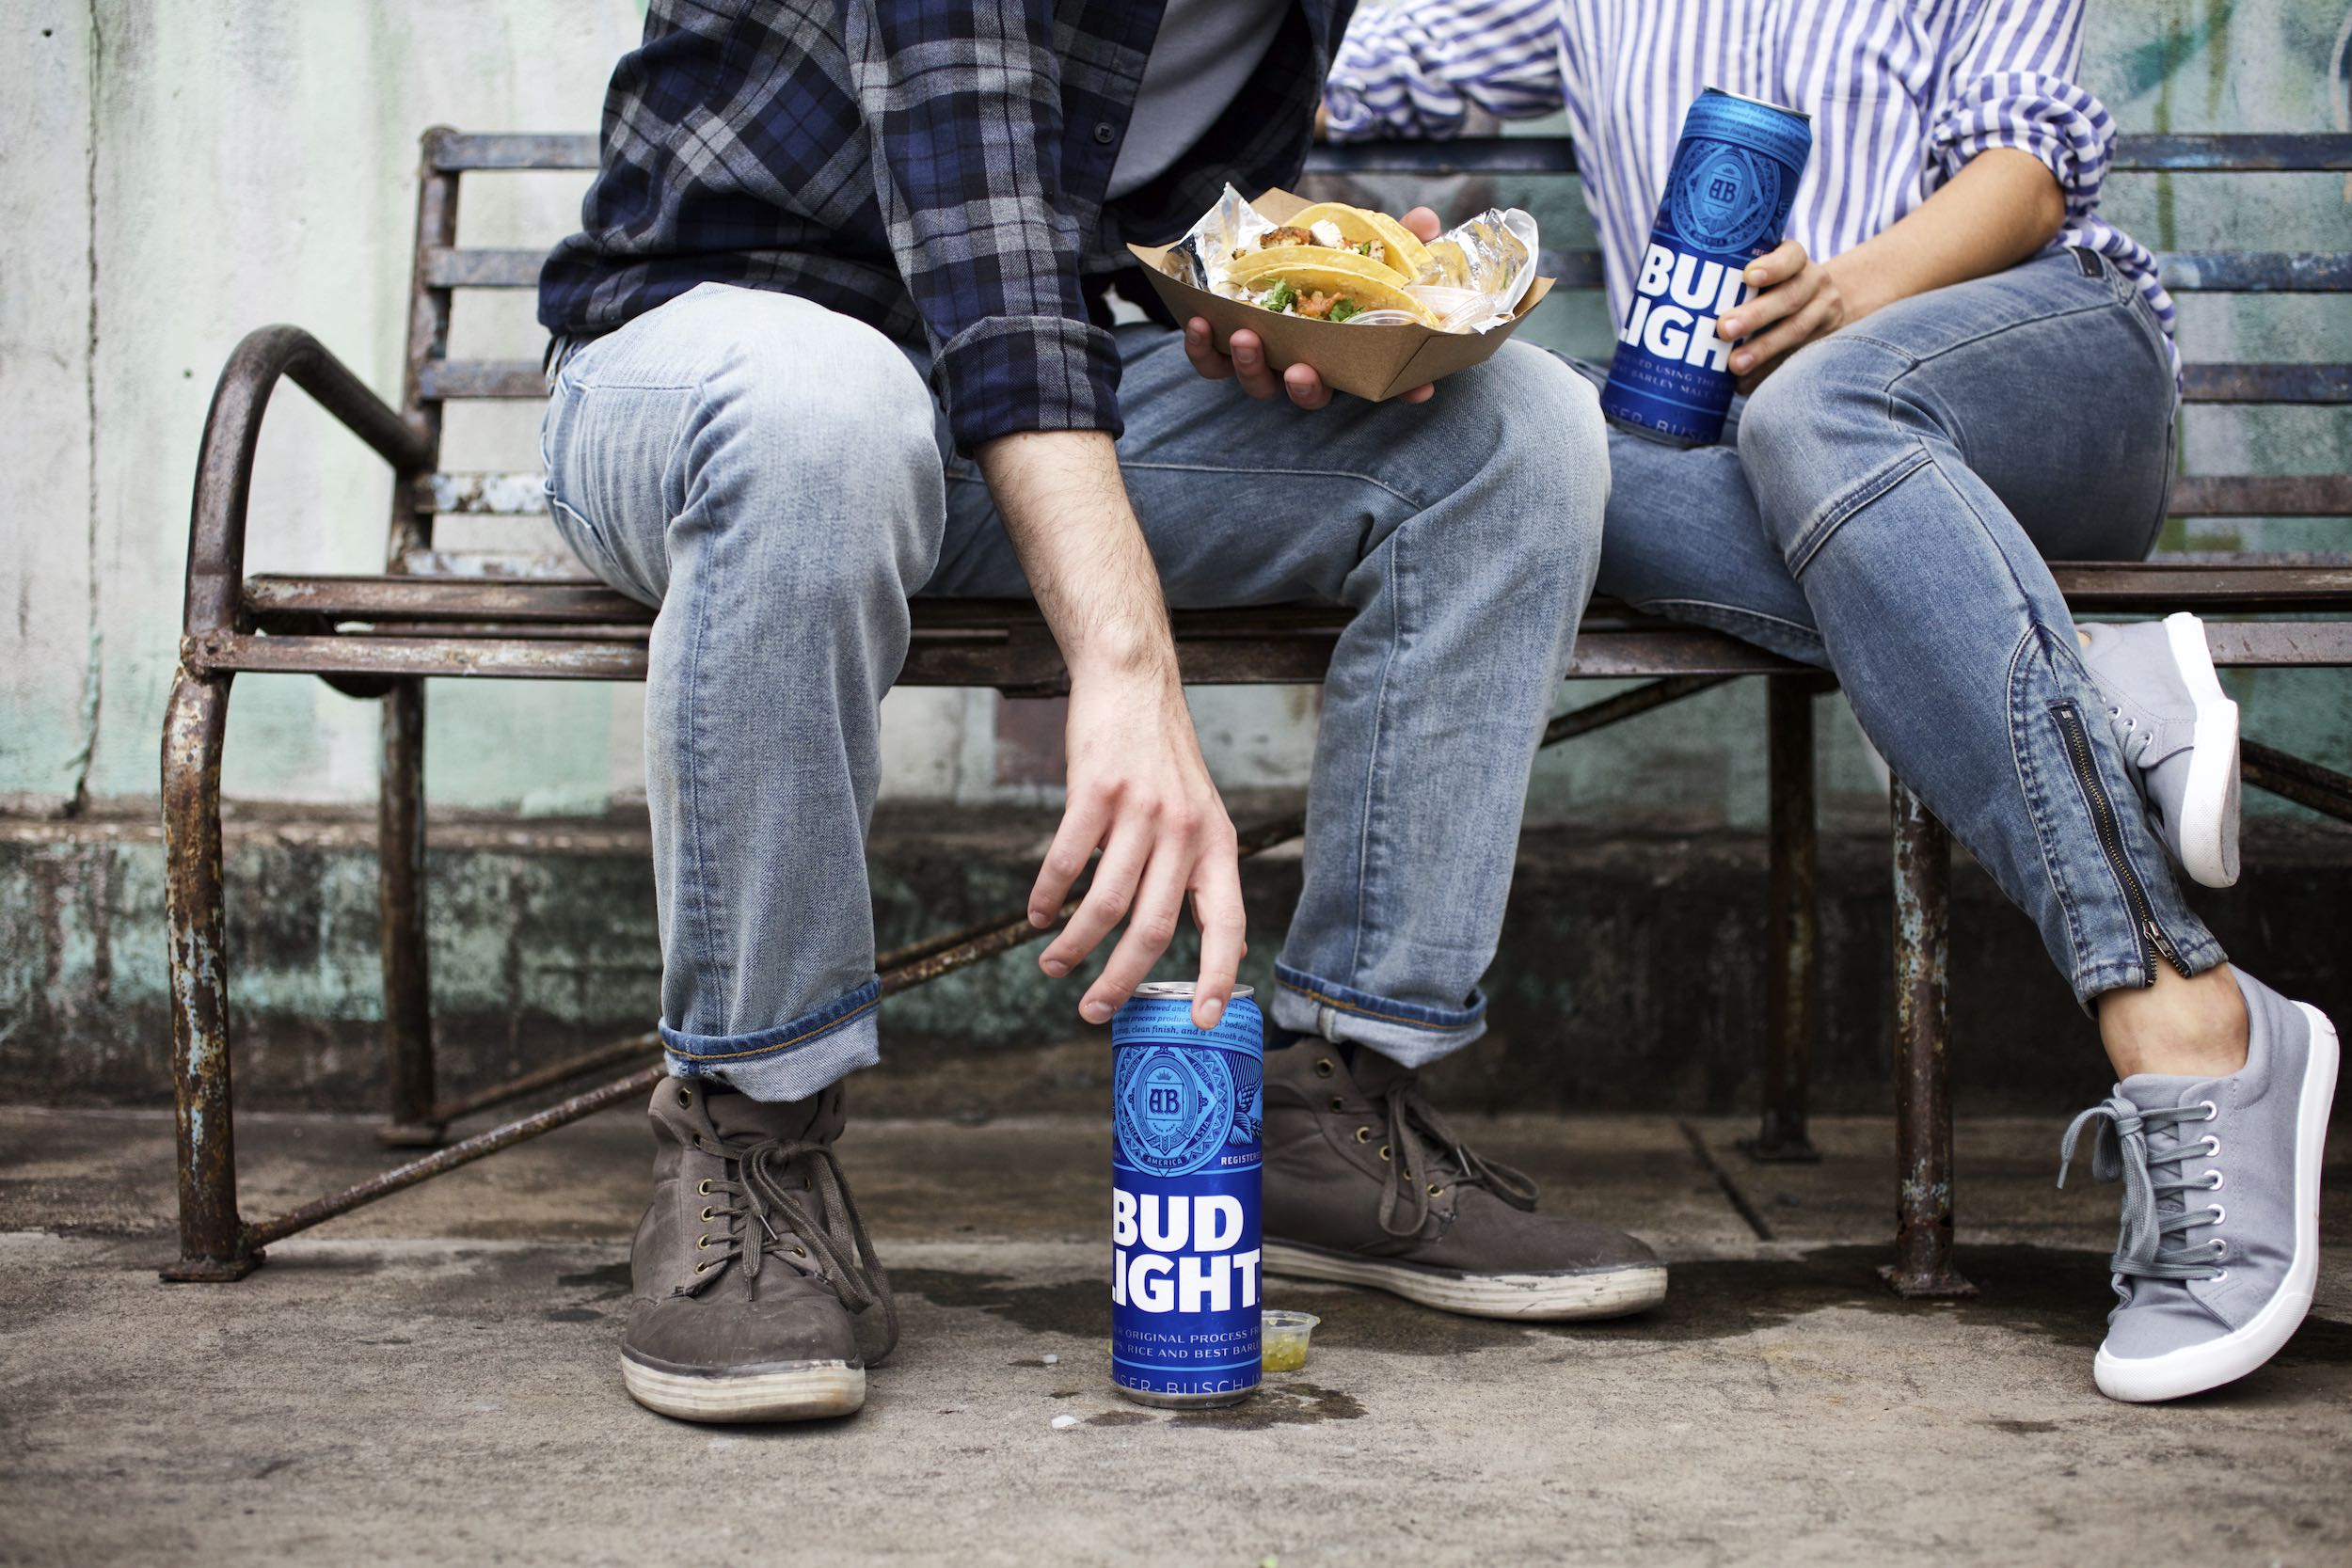 Jody Horton Photography - Bud Light ad with pint cans and tacos and man reaching for beer.